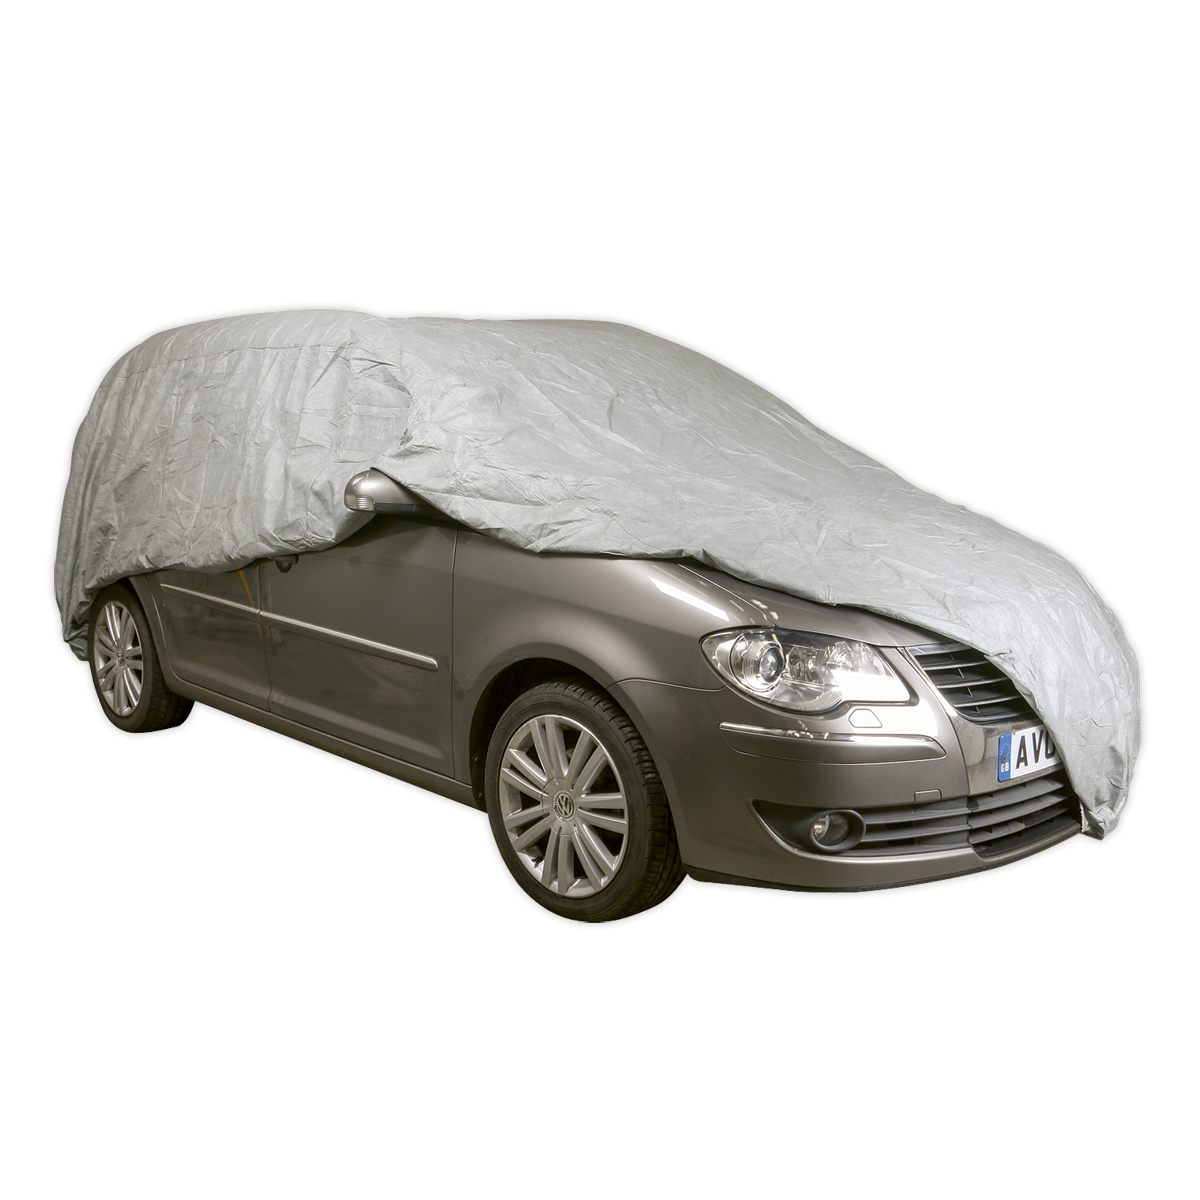 All Seasons Car Cover 3-Layer - Extra Extra Large   SEALEY SCCXXL by Sealey   Ne